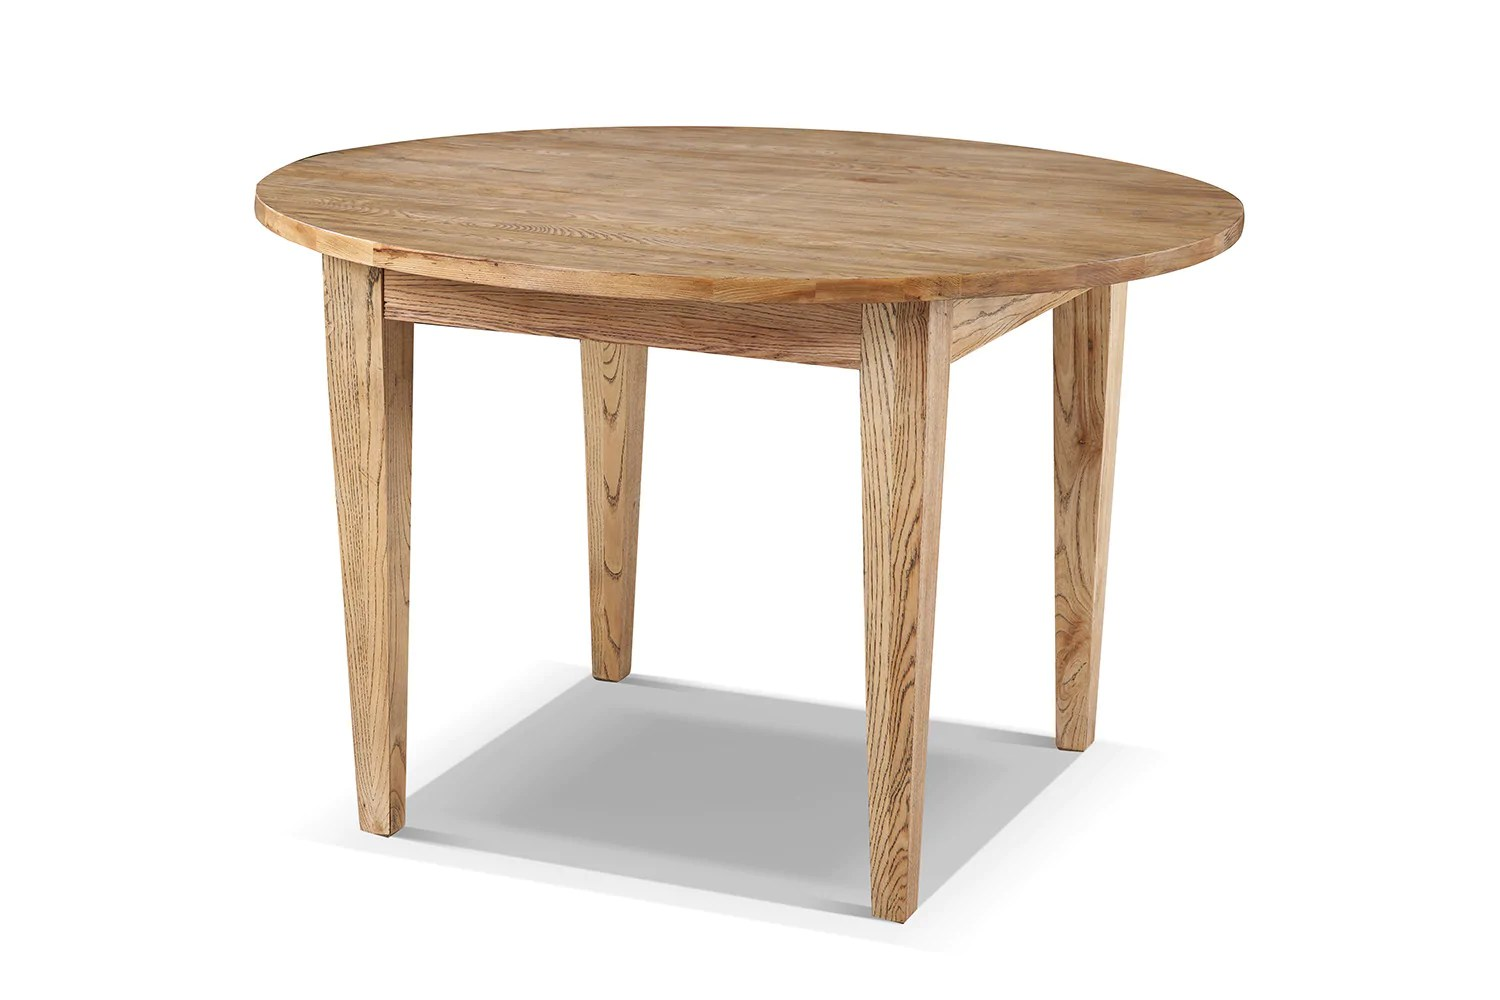 Table De Cuisine Bois Table De Cuisine Ronde En Bois Rose And Moore